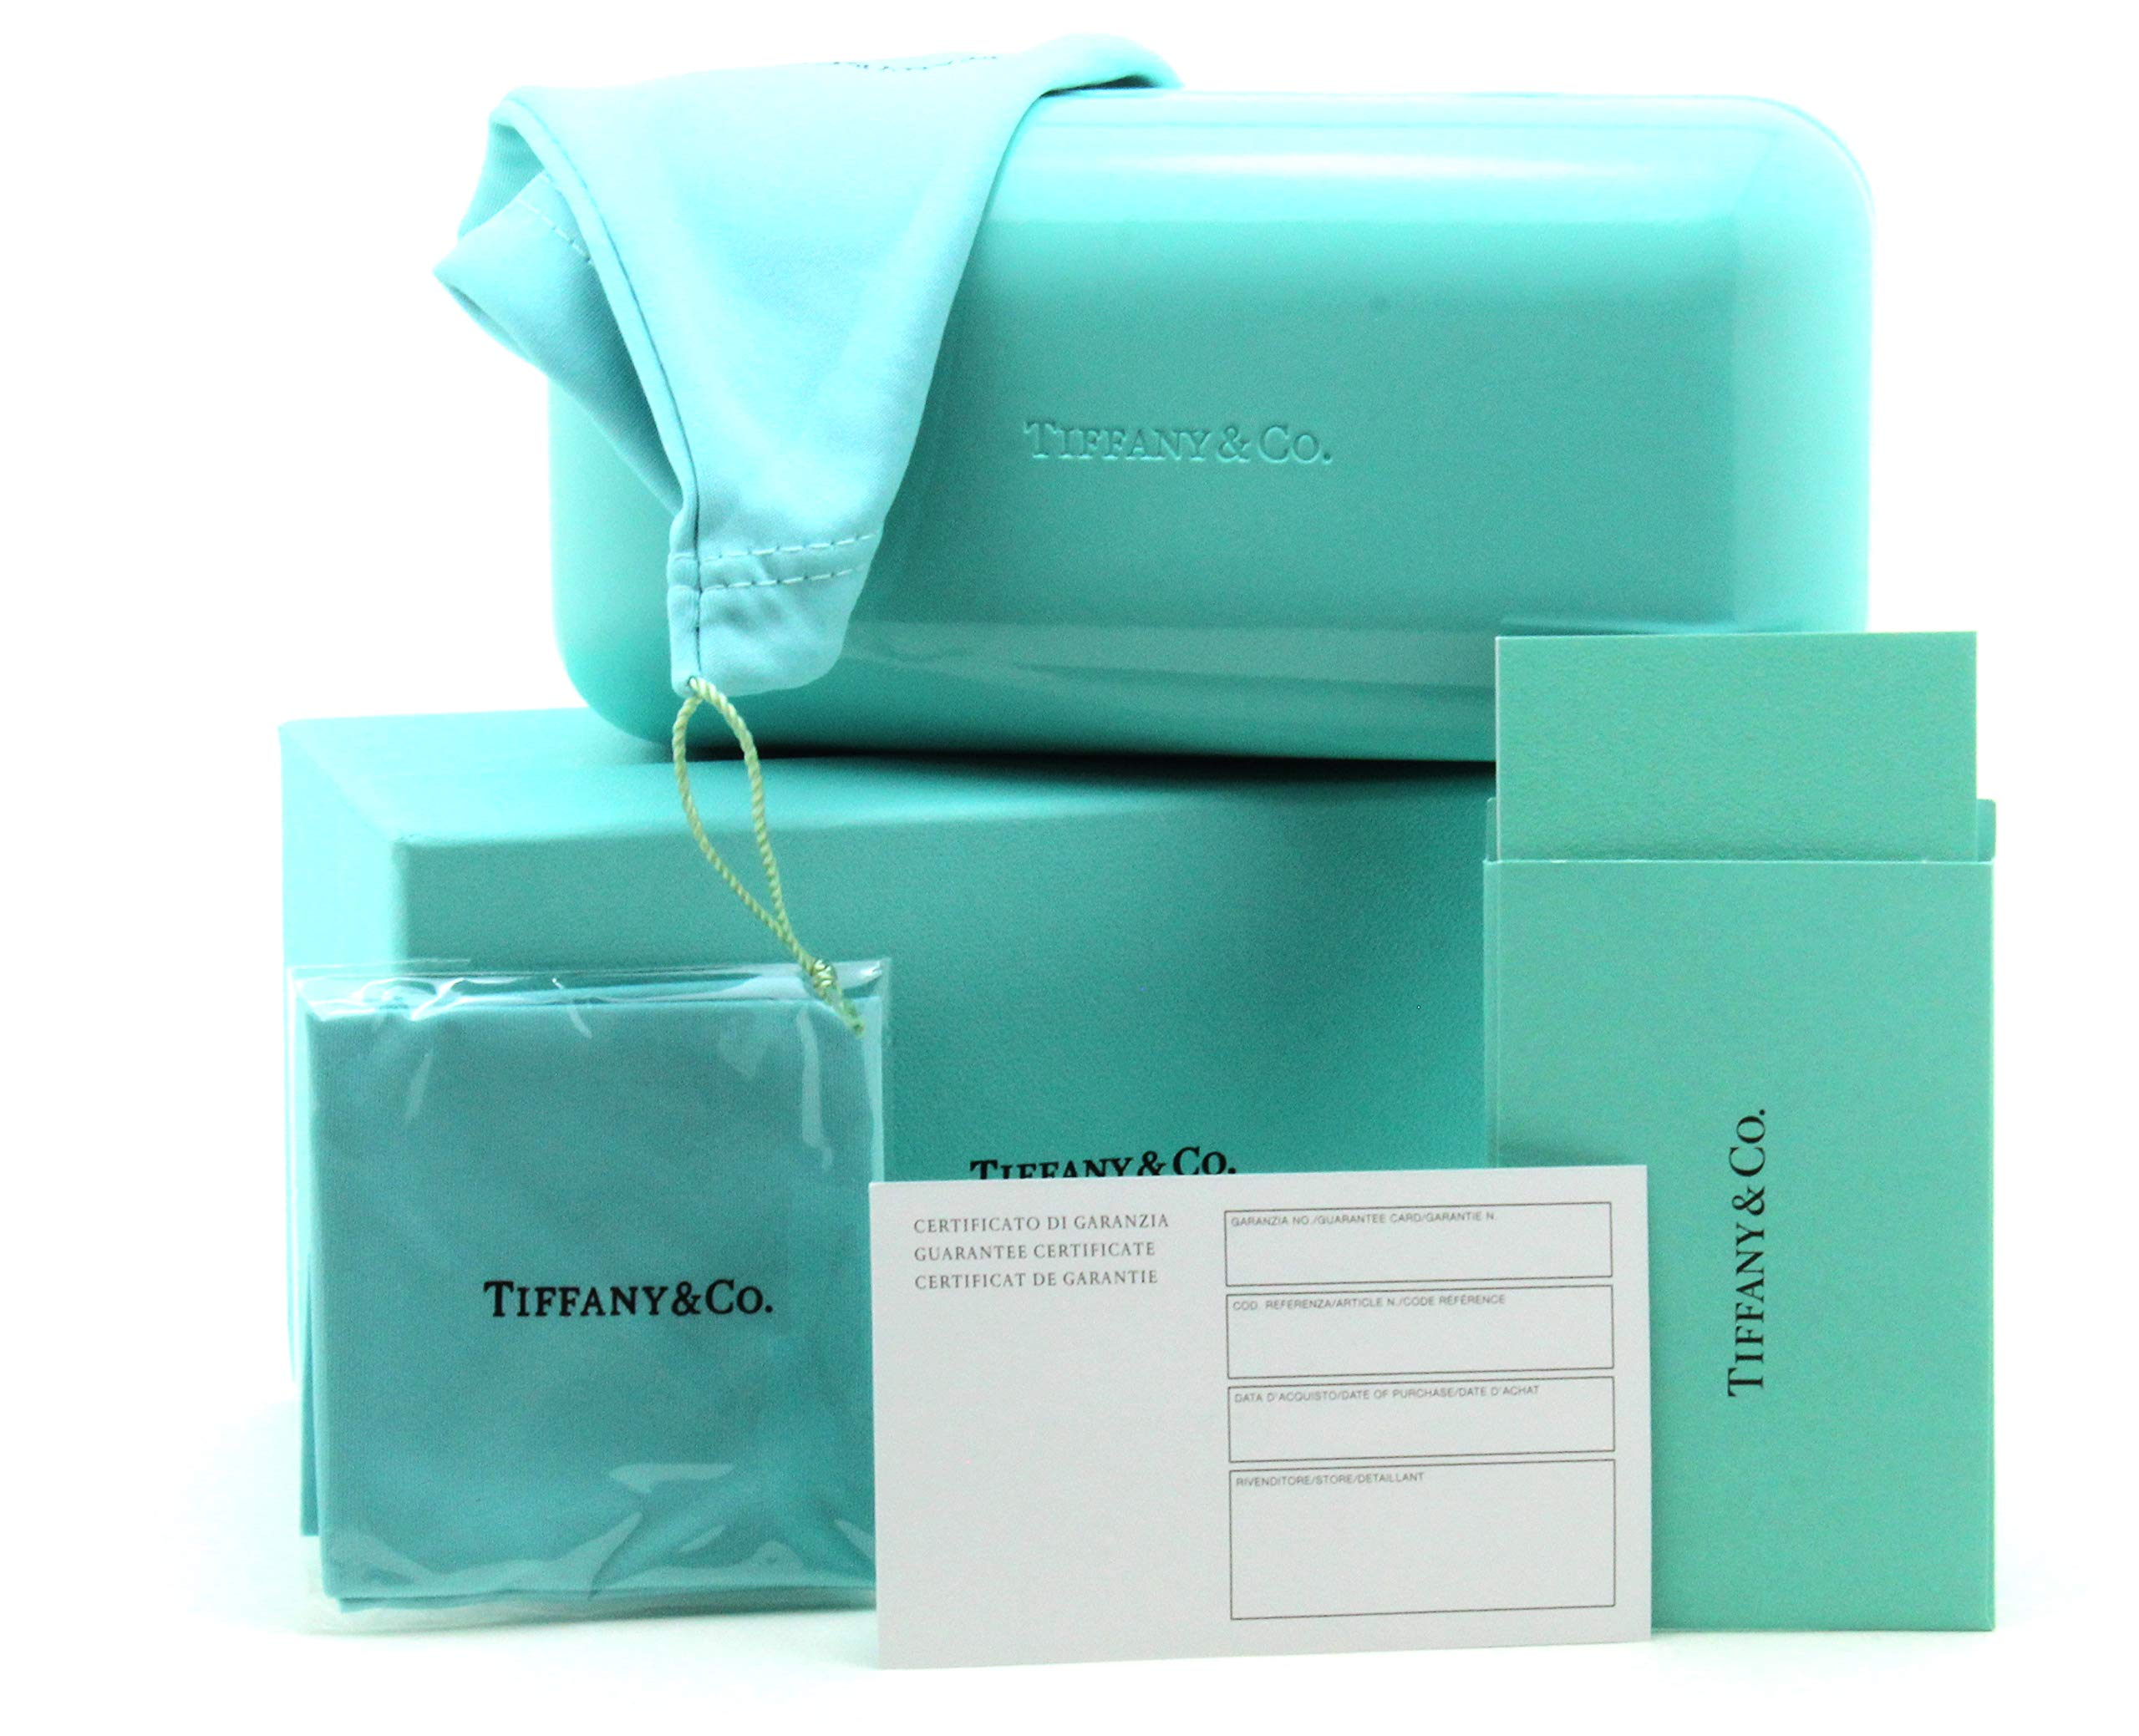 Tiffany & Co. Hard Clam-Shell Case for Sunglasses Eyeglasses w/Original Retail Packaging (Large) by Tiffany & Co.